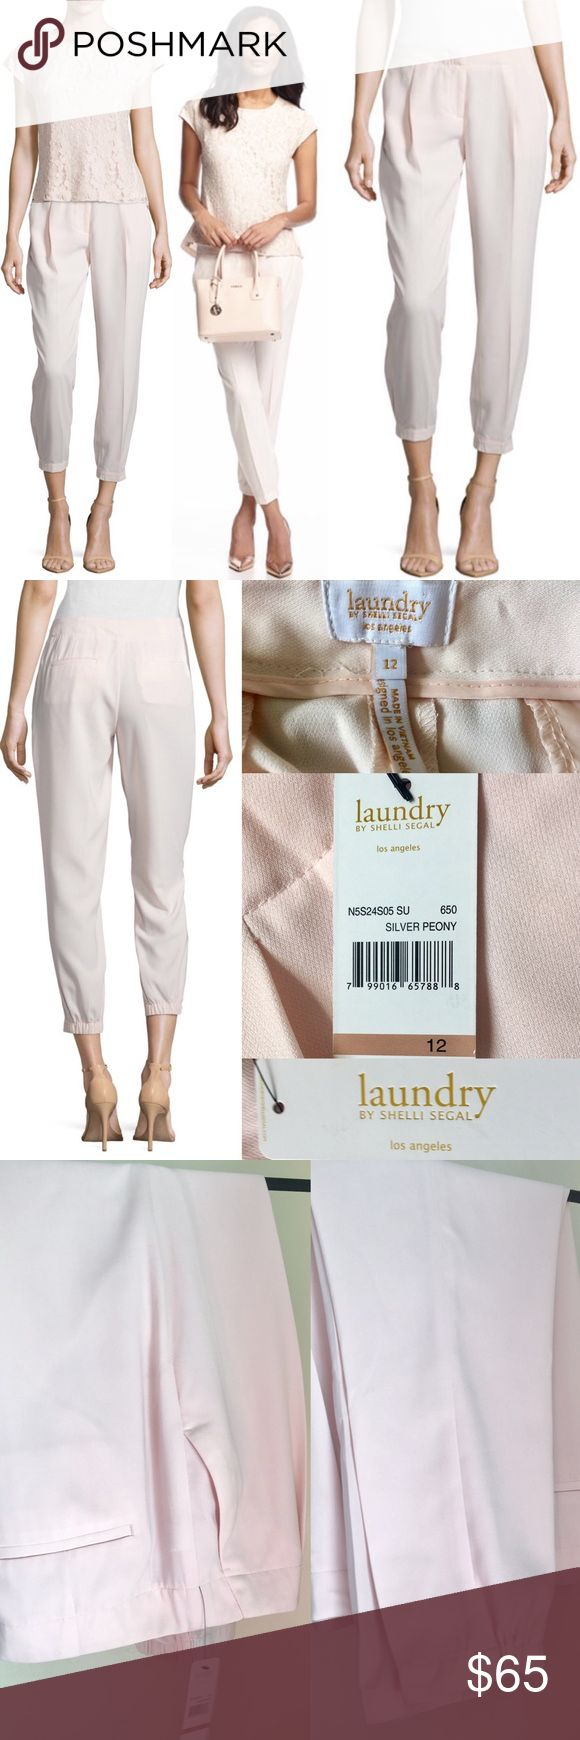 "LAUNDRY SHELLI SEGAL Elastic Hem Relaxed Leg Pants 💕LAUNDRY BY SHELLI SEGAL💕 Elastic-Hem Relaxed-Leg Pants 💕🌸   $189 MSRP; completely sold out. Stunning silver Peony color-super feminine pale pink🌸, side slip+back welt pockets, pleated front, relaxed legs, elasticated hem, tab/zip fly closure, soft+light fabric. Measures flat approx: L37"", Inseam:27, Rise:10"", W:18"", H:22.5"". Ask Qs B4purchase💕Bundle for discount! 💕 Laundry by Shelli Segal Pants Ankle & Cropped"